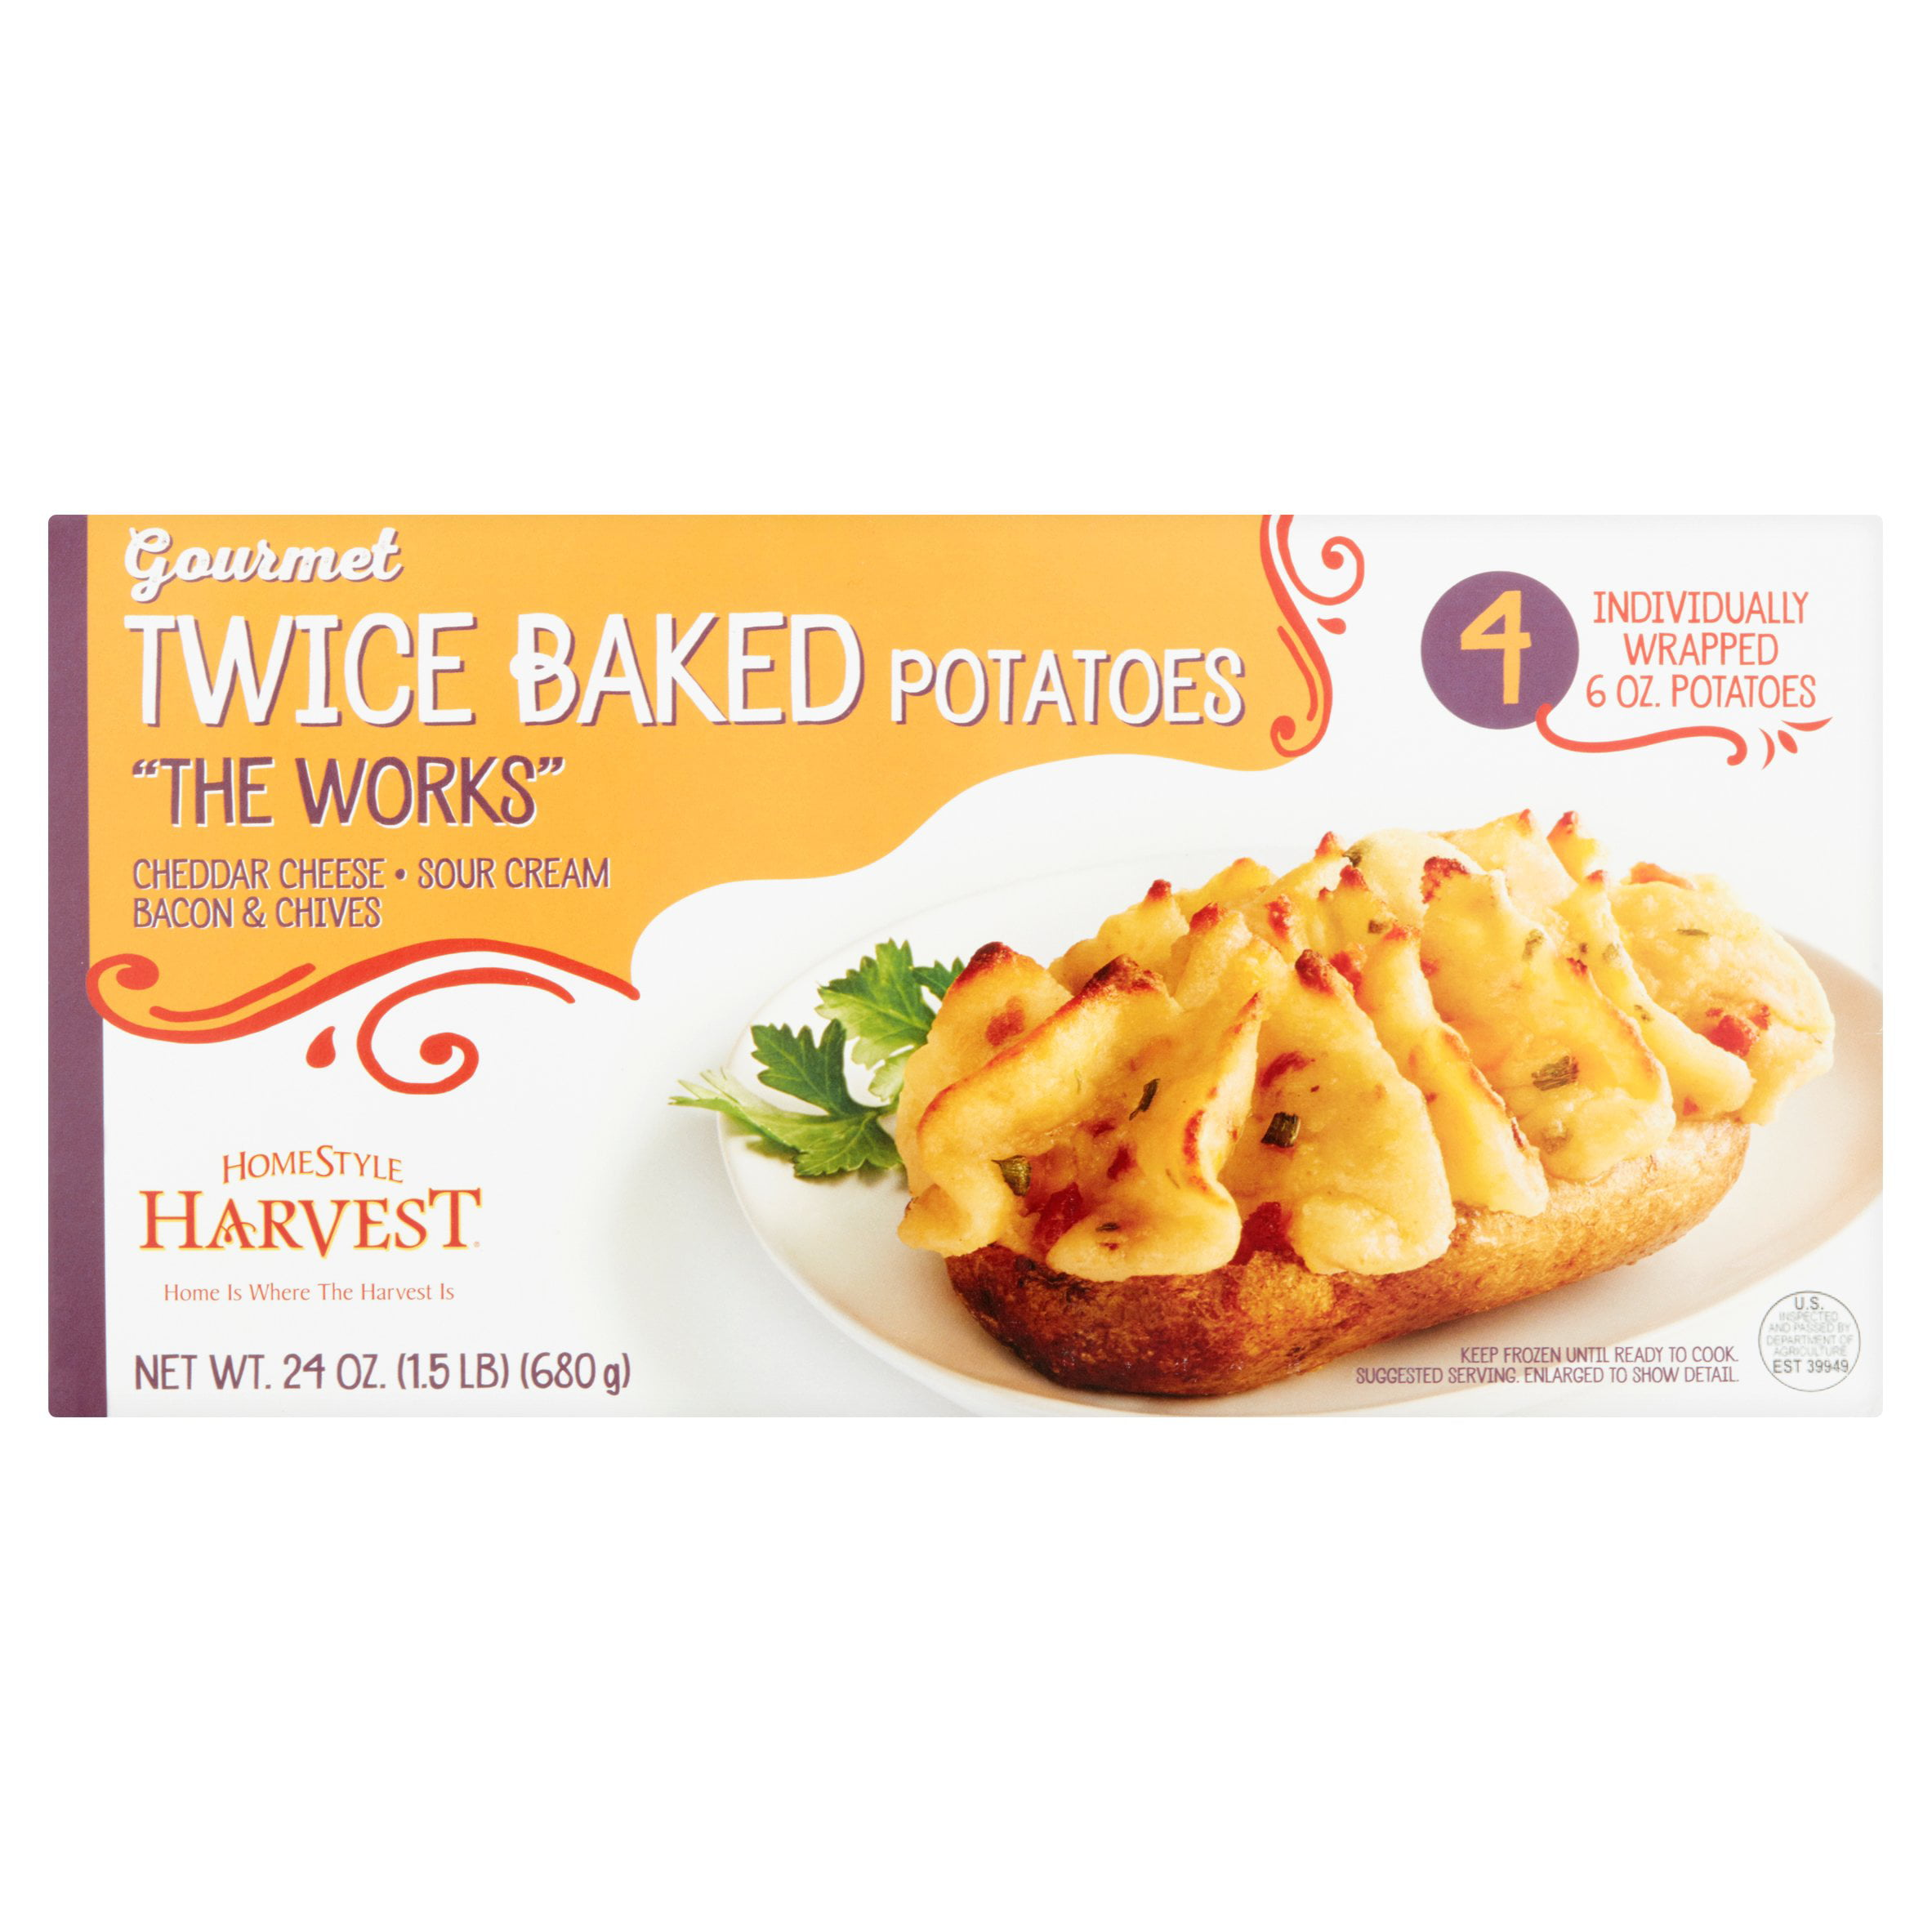 Homestyle Harvest The Works Twice Baked Potato 4 Individually Wrapped 6 Oz Potatoes Walmart Com Walmart Com